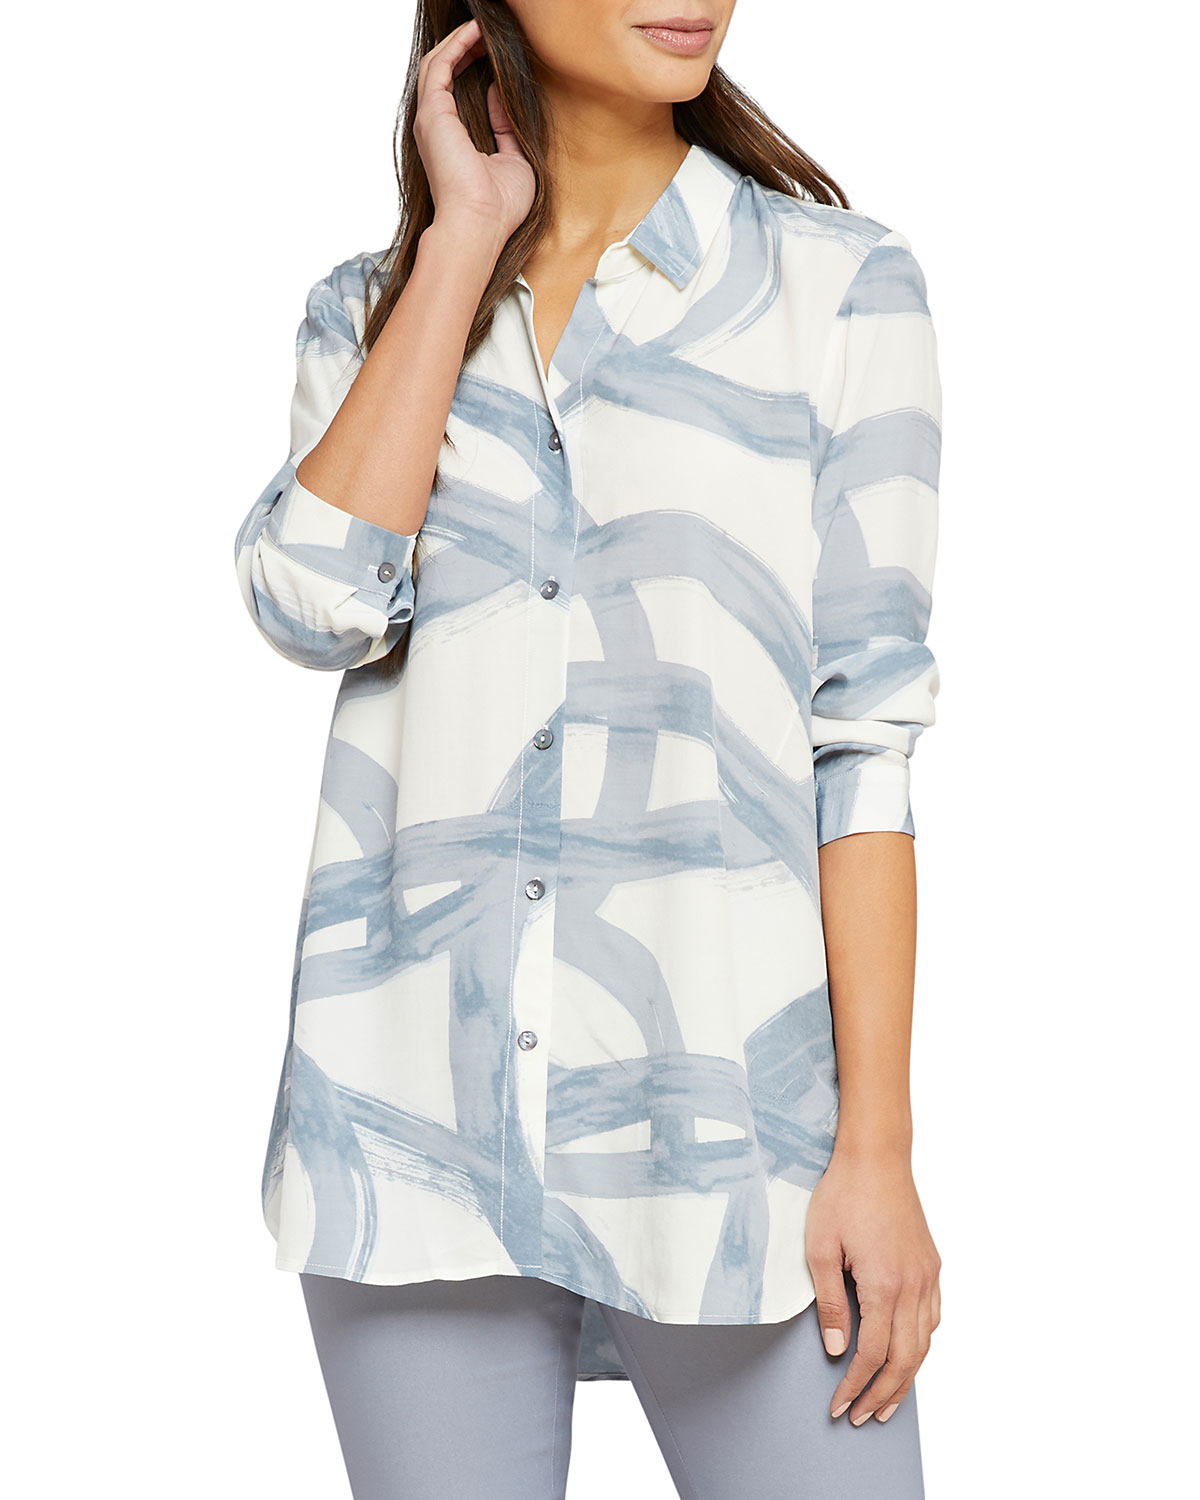 Nic+zoe T-shirts PLUS SIZE ROUND ABOUT PRINTED LONG-SLEEVE BUTTON-FRONT SHIRT